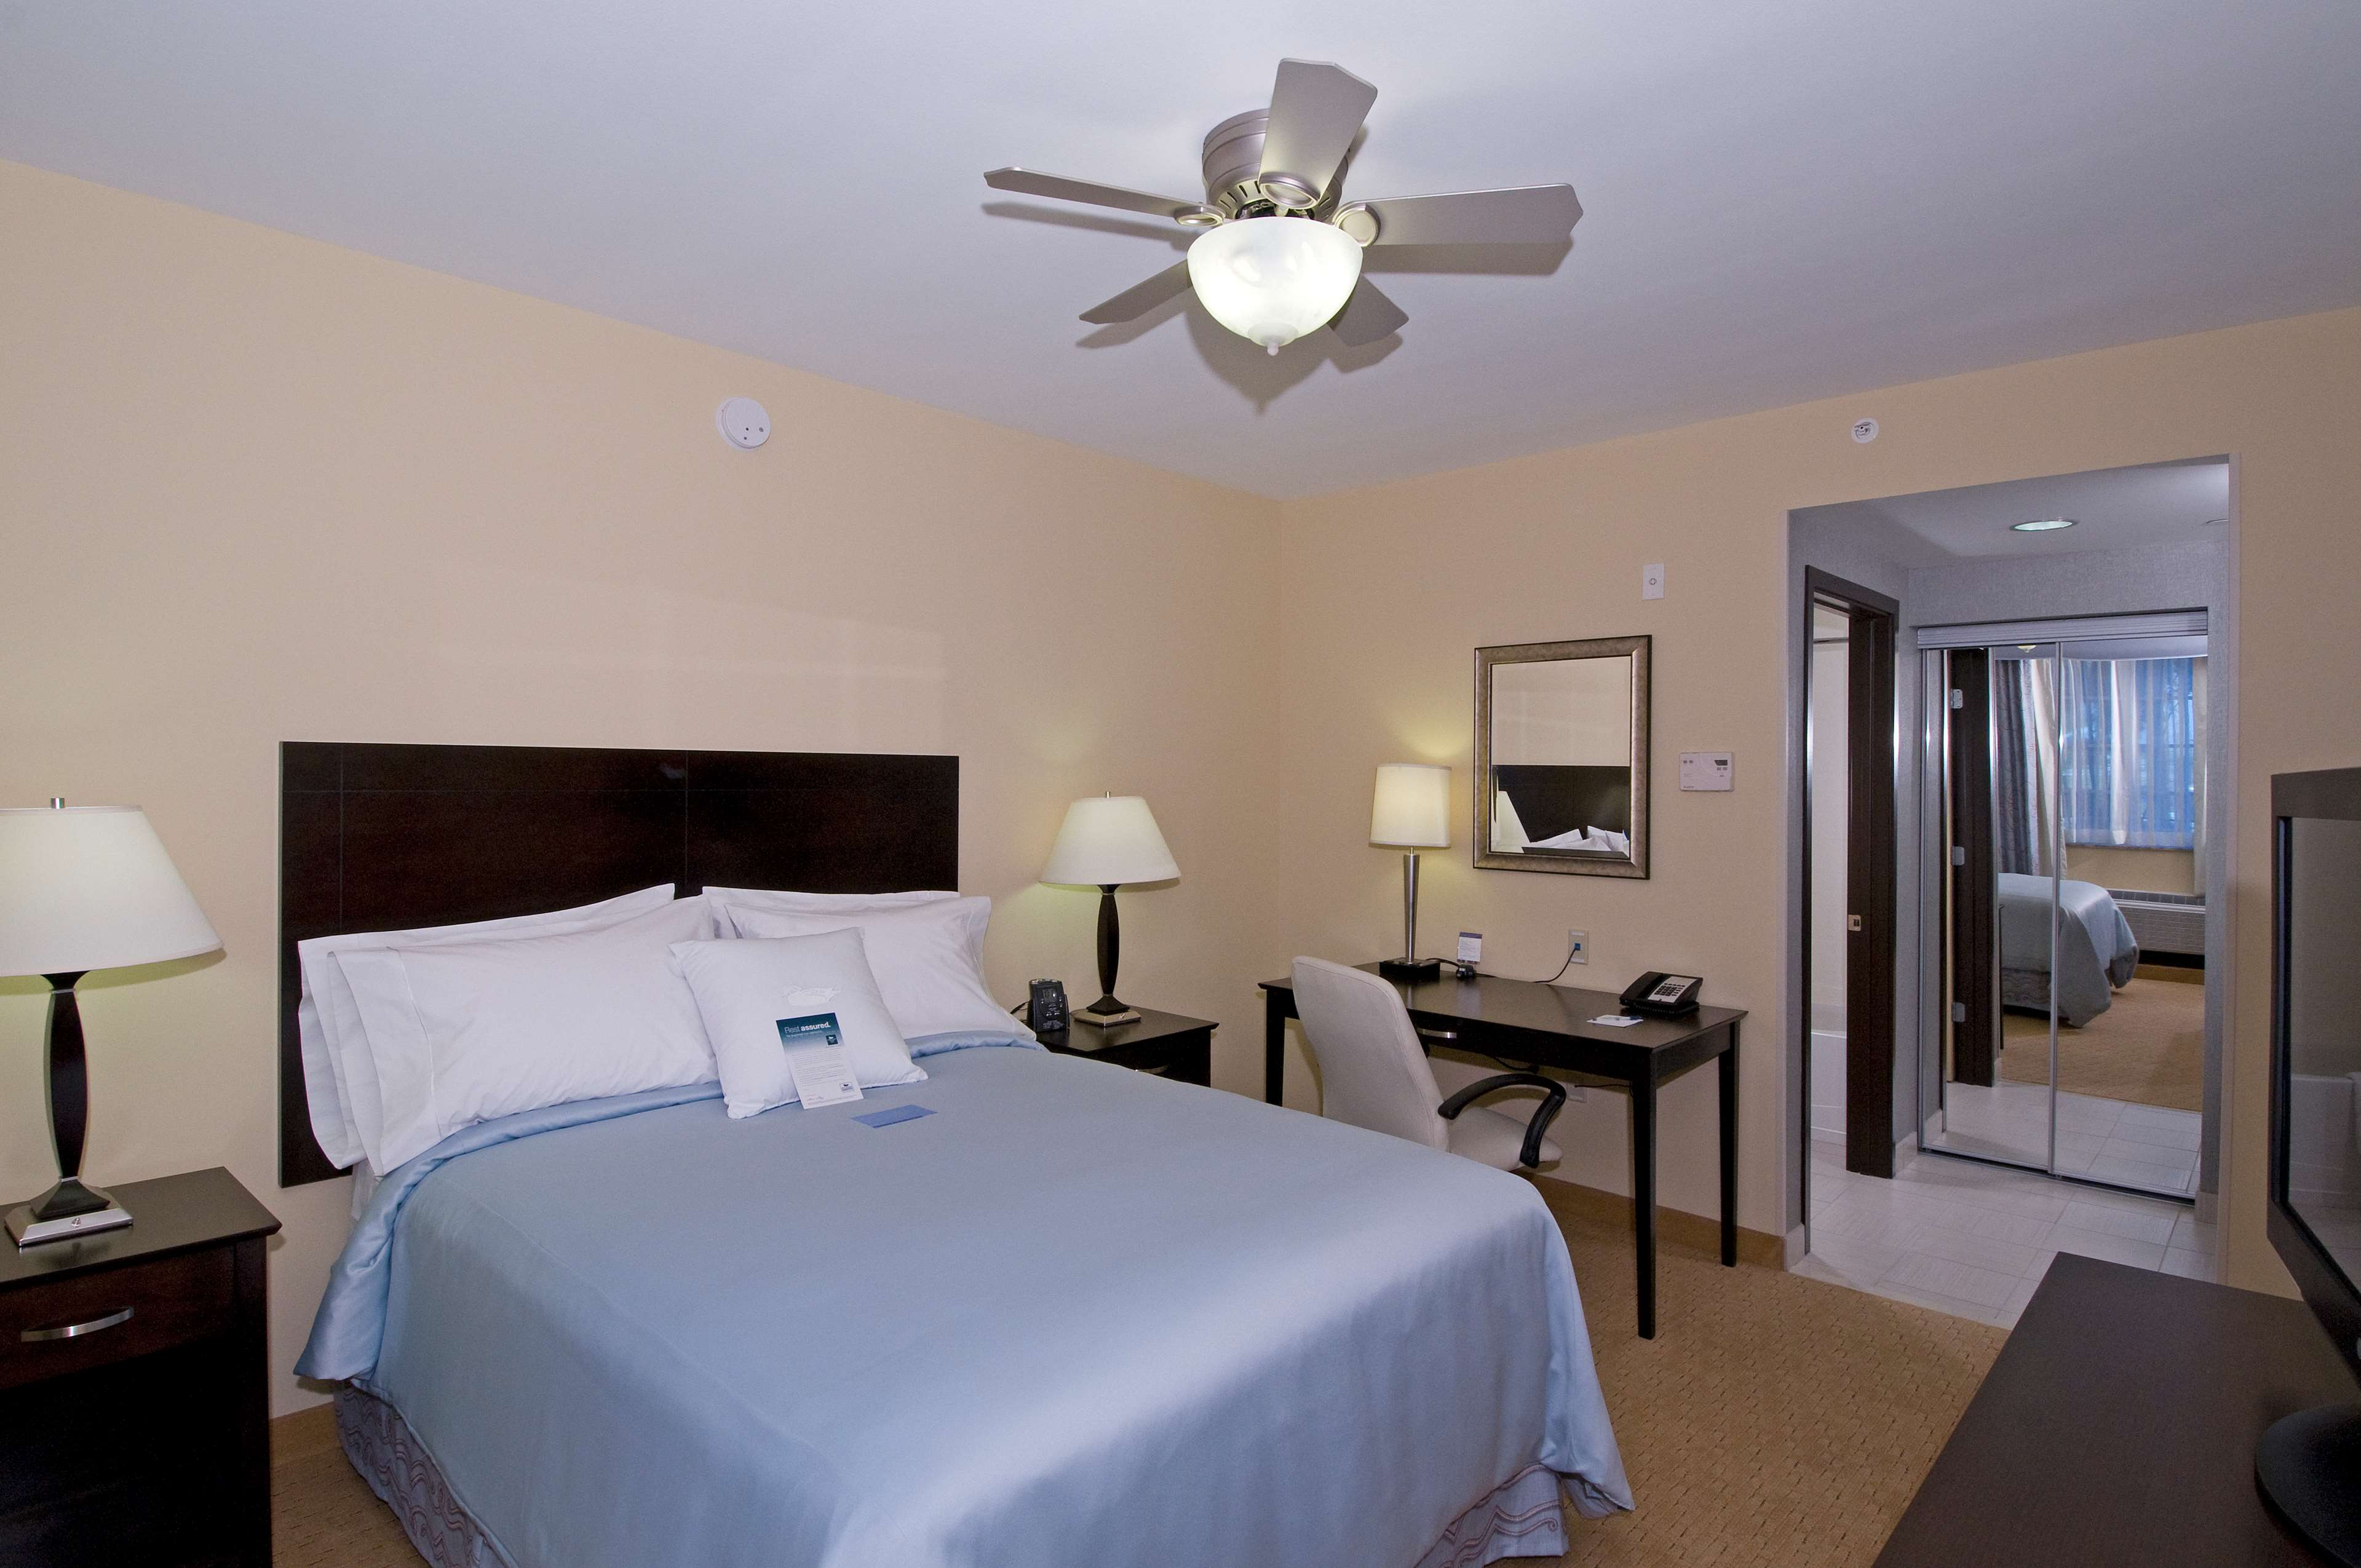 Homewood Suites by Hilton Port St. Lucie-Tradition image 5